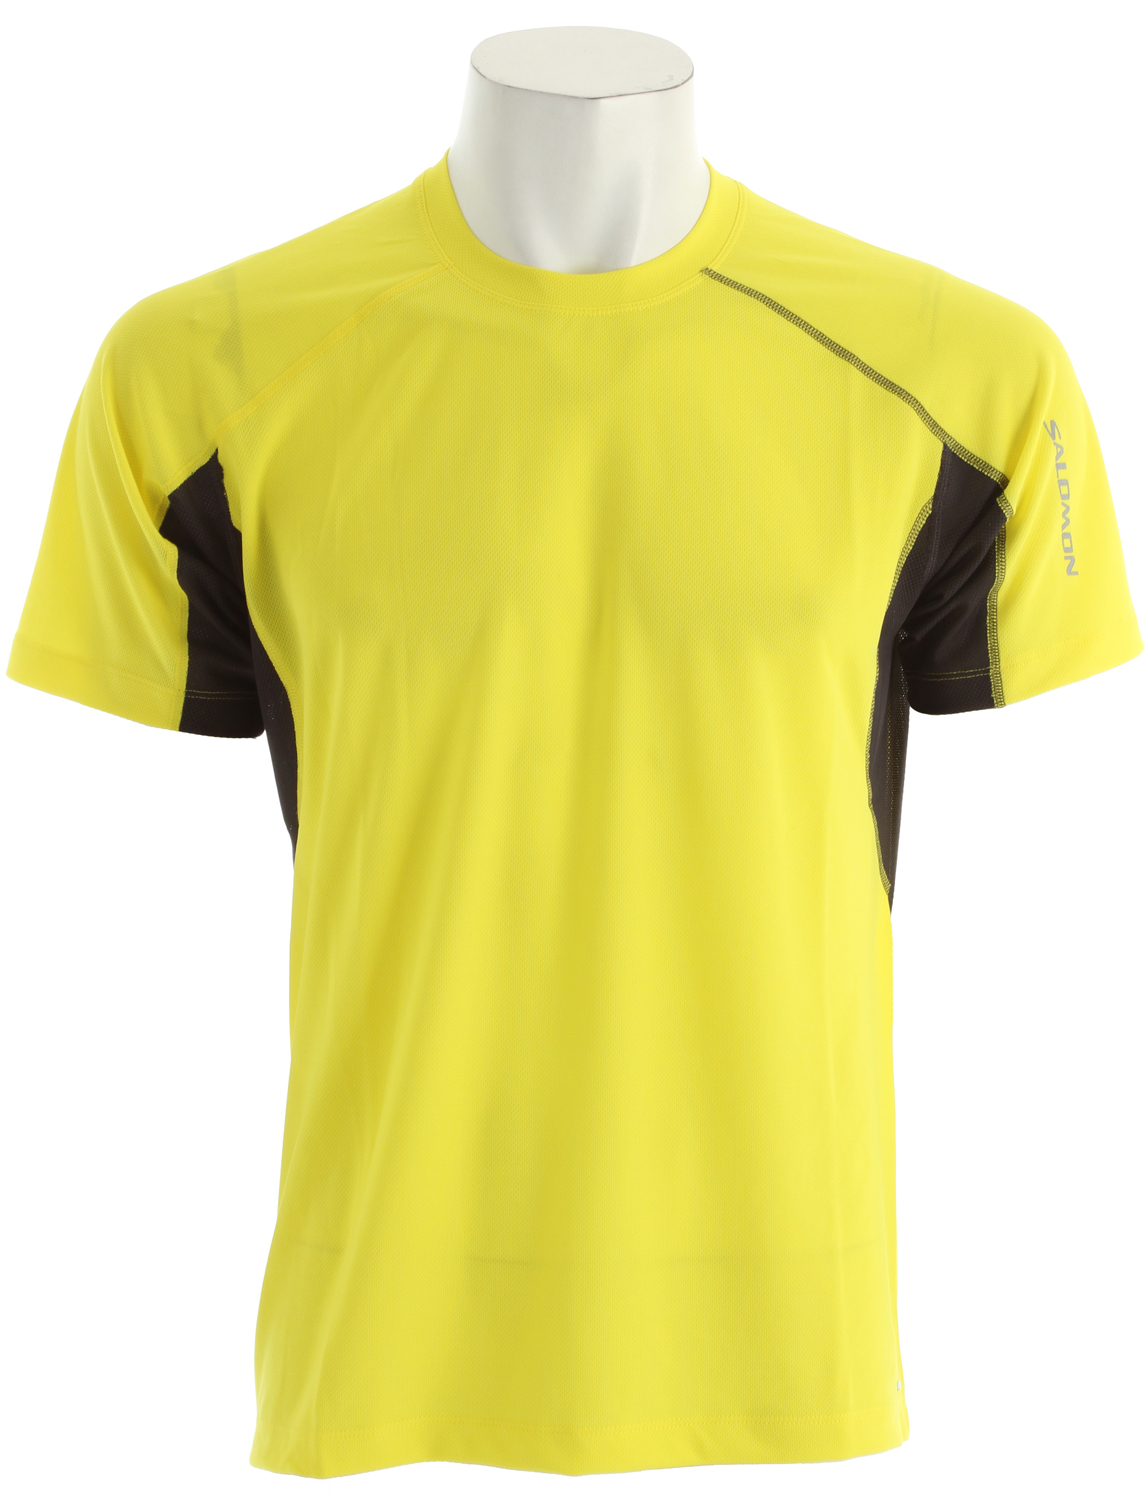 Fitness Relaxed fitting, versatile tee for running and outdoor sports with mesh pit vent panels, updated seam detailing and stash pocket.Key Features of the Salomon Trail IV T-Shirt: Flatlock Seams Stash Pocket Reflective Branding Front & Back actiLITE Poly Mock Eyelet actiLITE Stretch Mesh Relax Fit - $22.95